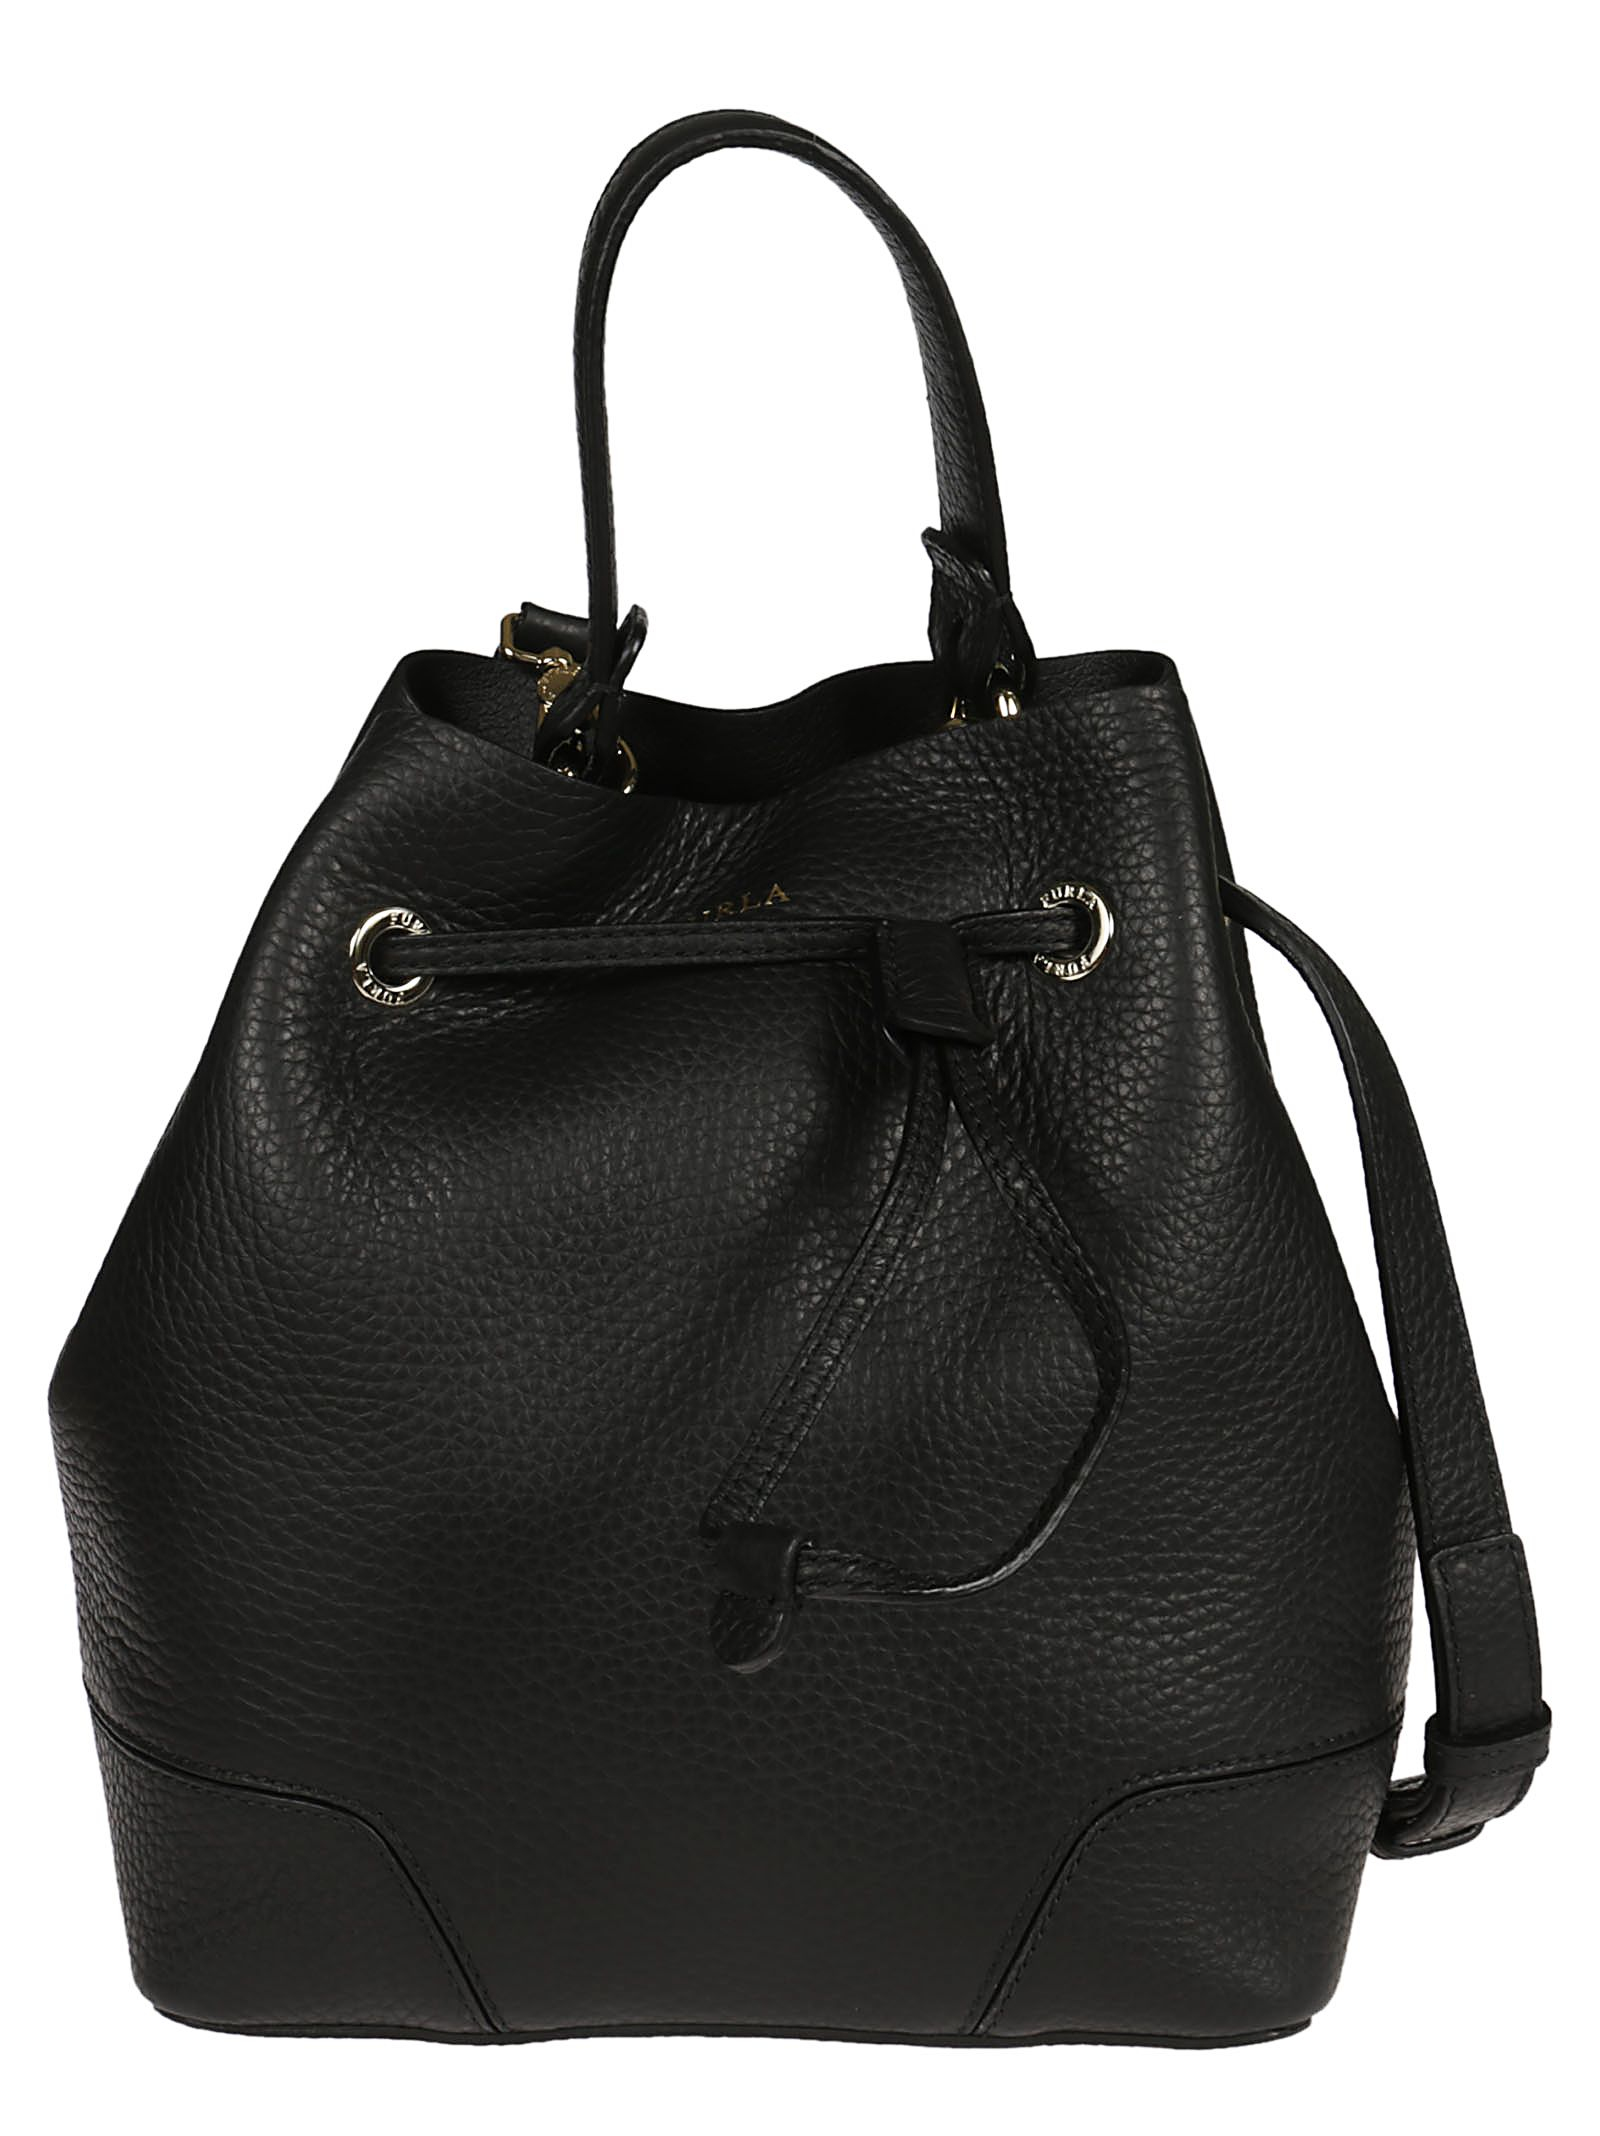 MEDIUM STACY BUCKET BAG